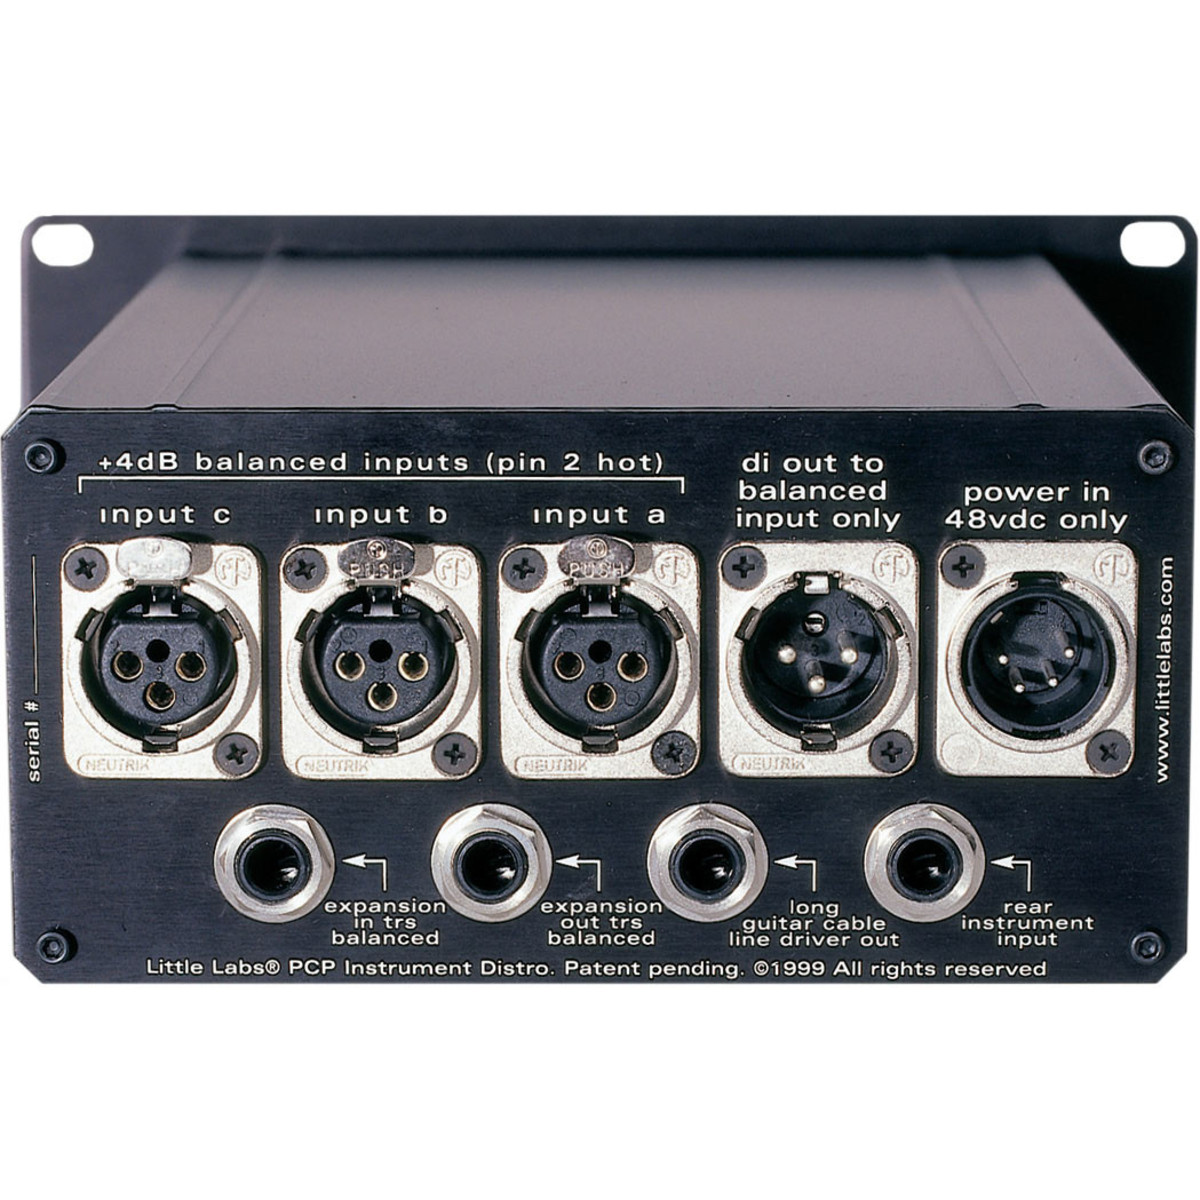 Disc Little Labs Pcp Instrument Distro 30 At Gear4music Stereo Line Driver 2 Loading Zoom